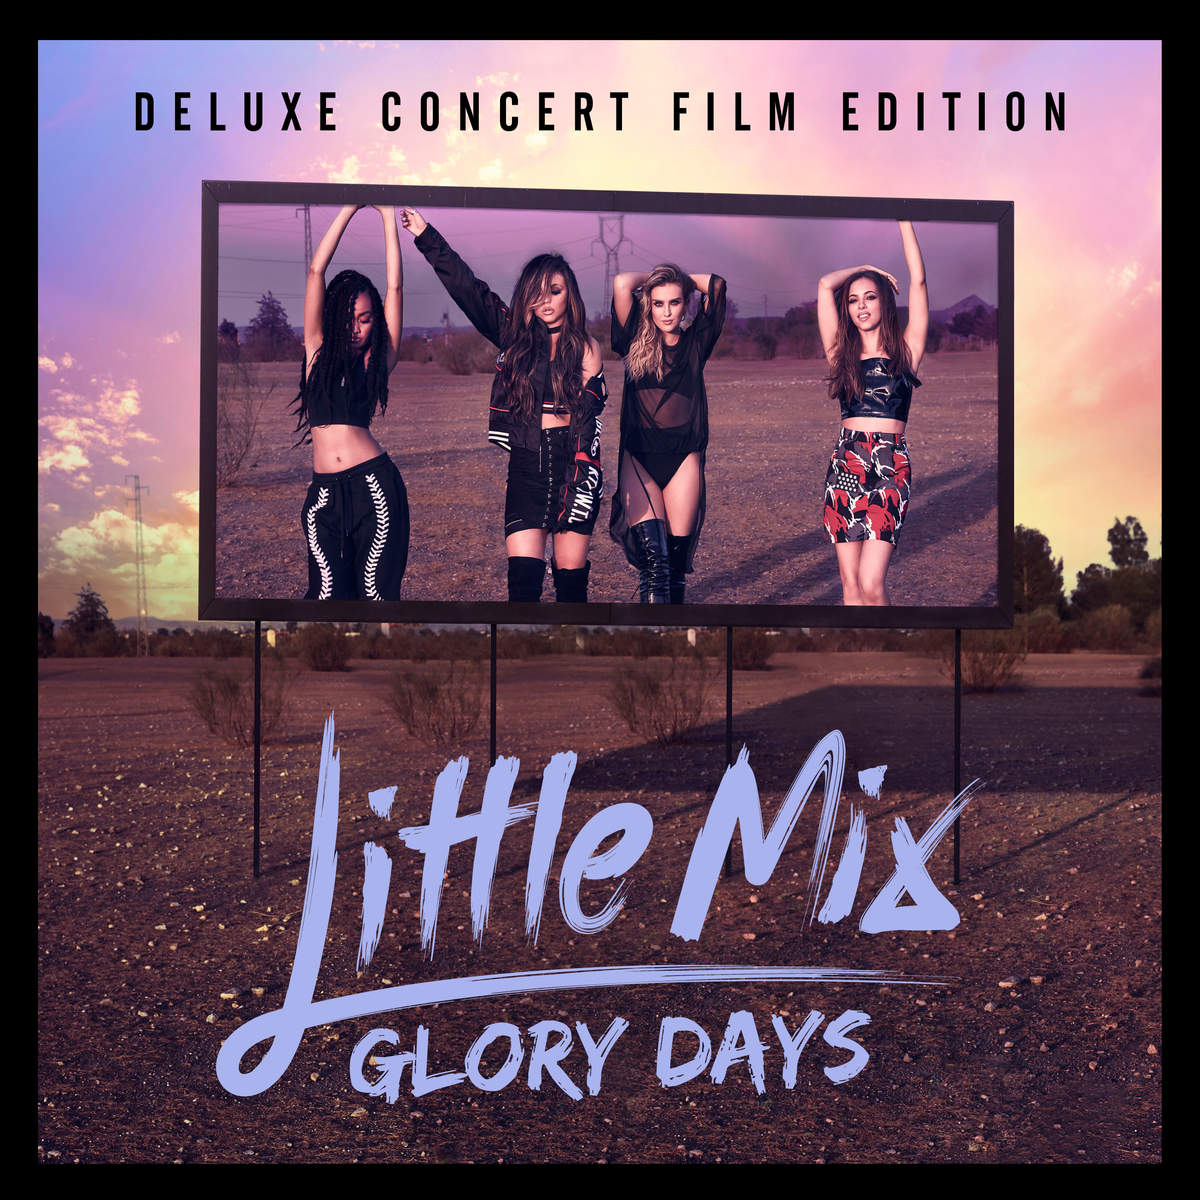 Little Mix Glory Days deluxe